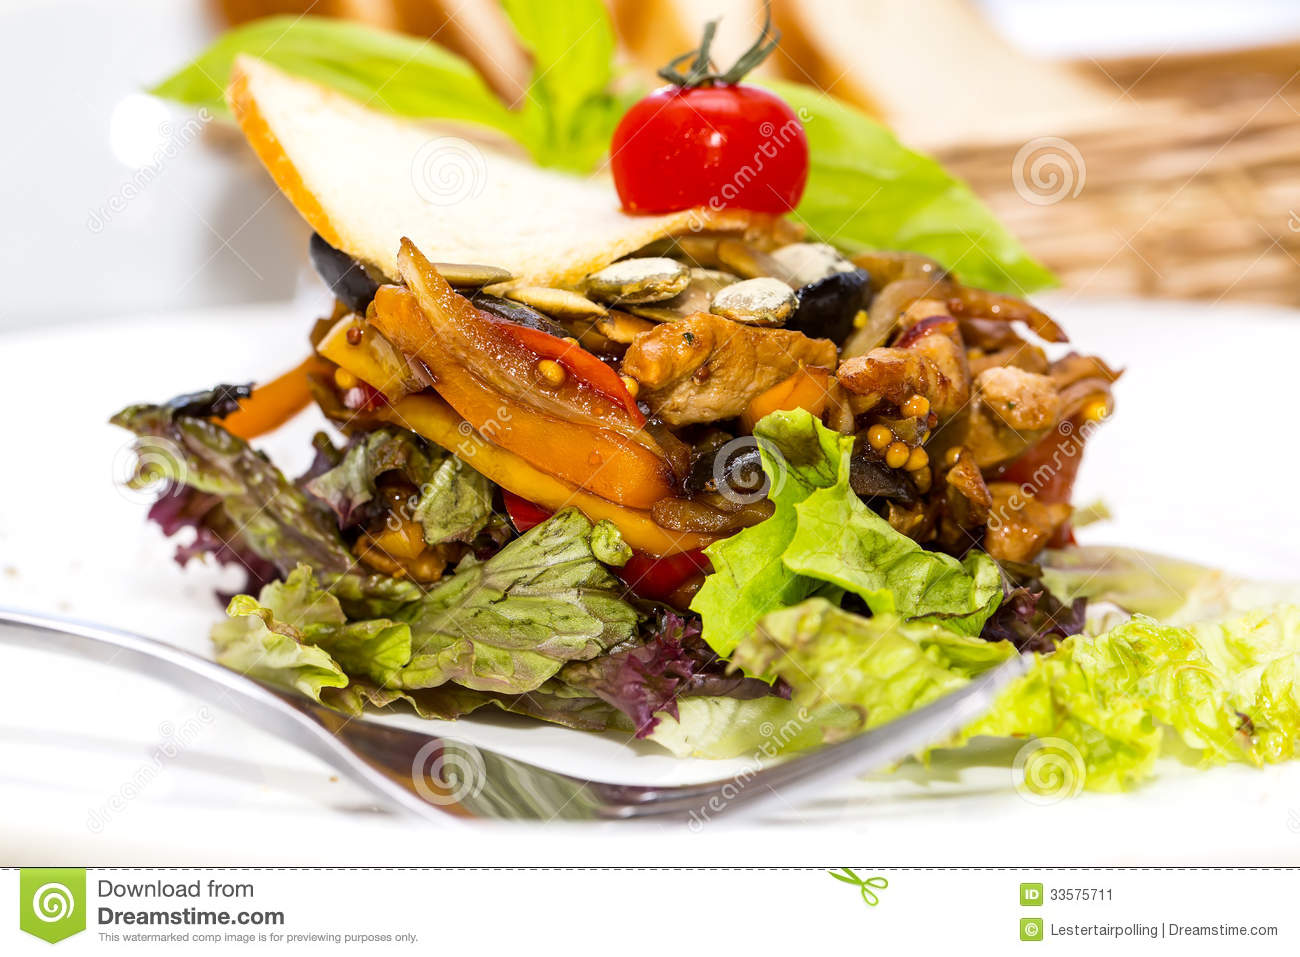 Salad with vegetables and meat on restaurant.